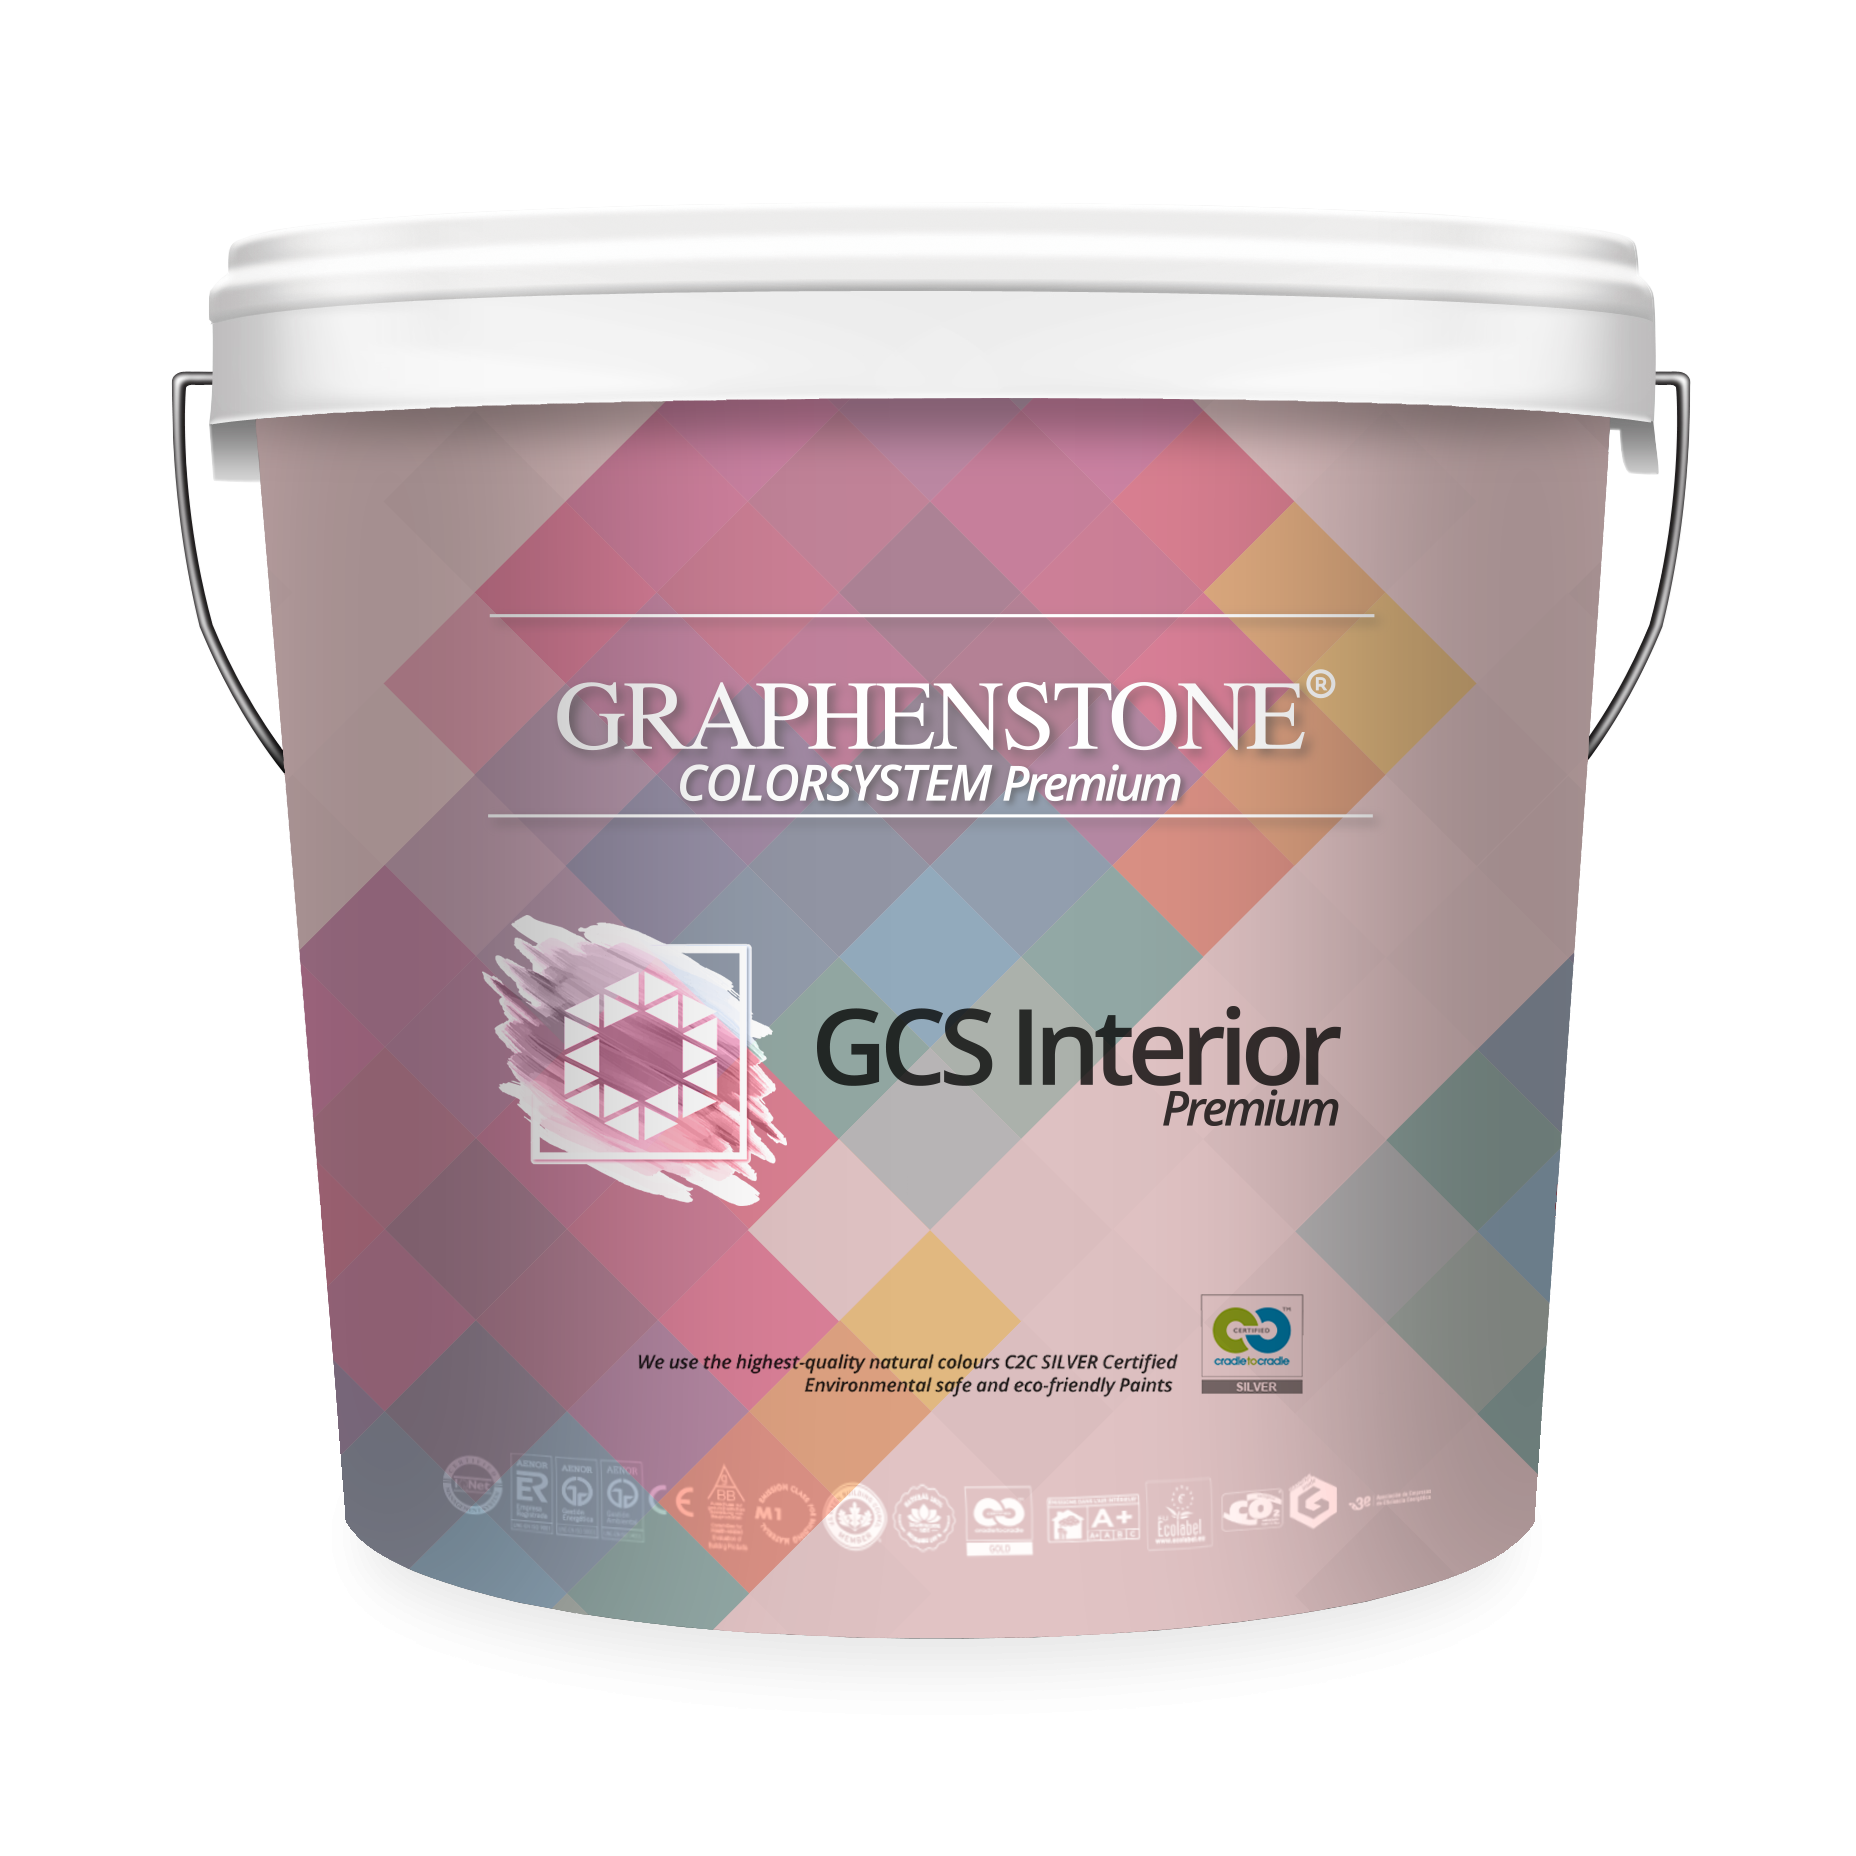 Graphenstone GCS Interior Premium - Internal Colour Range